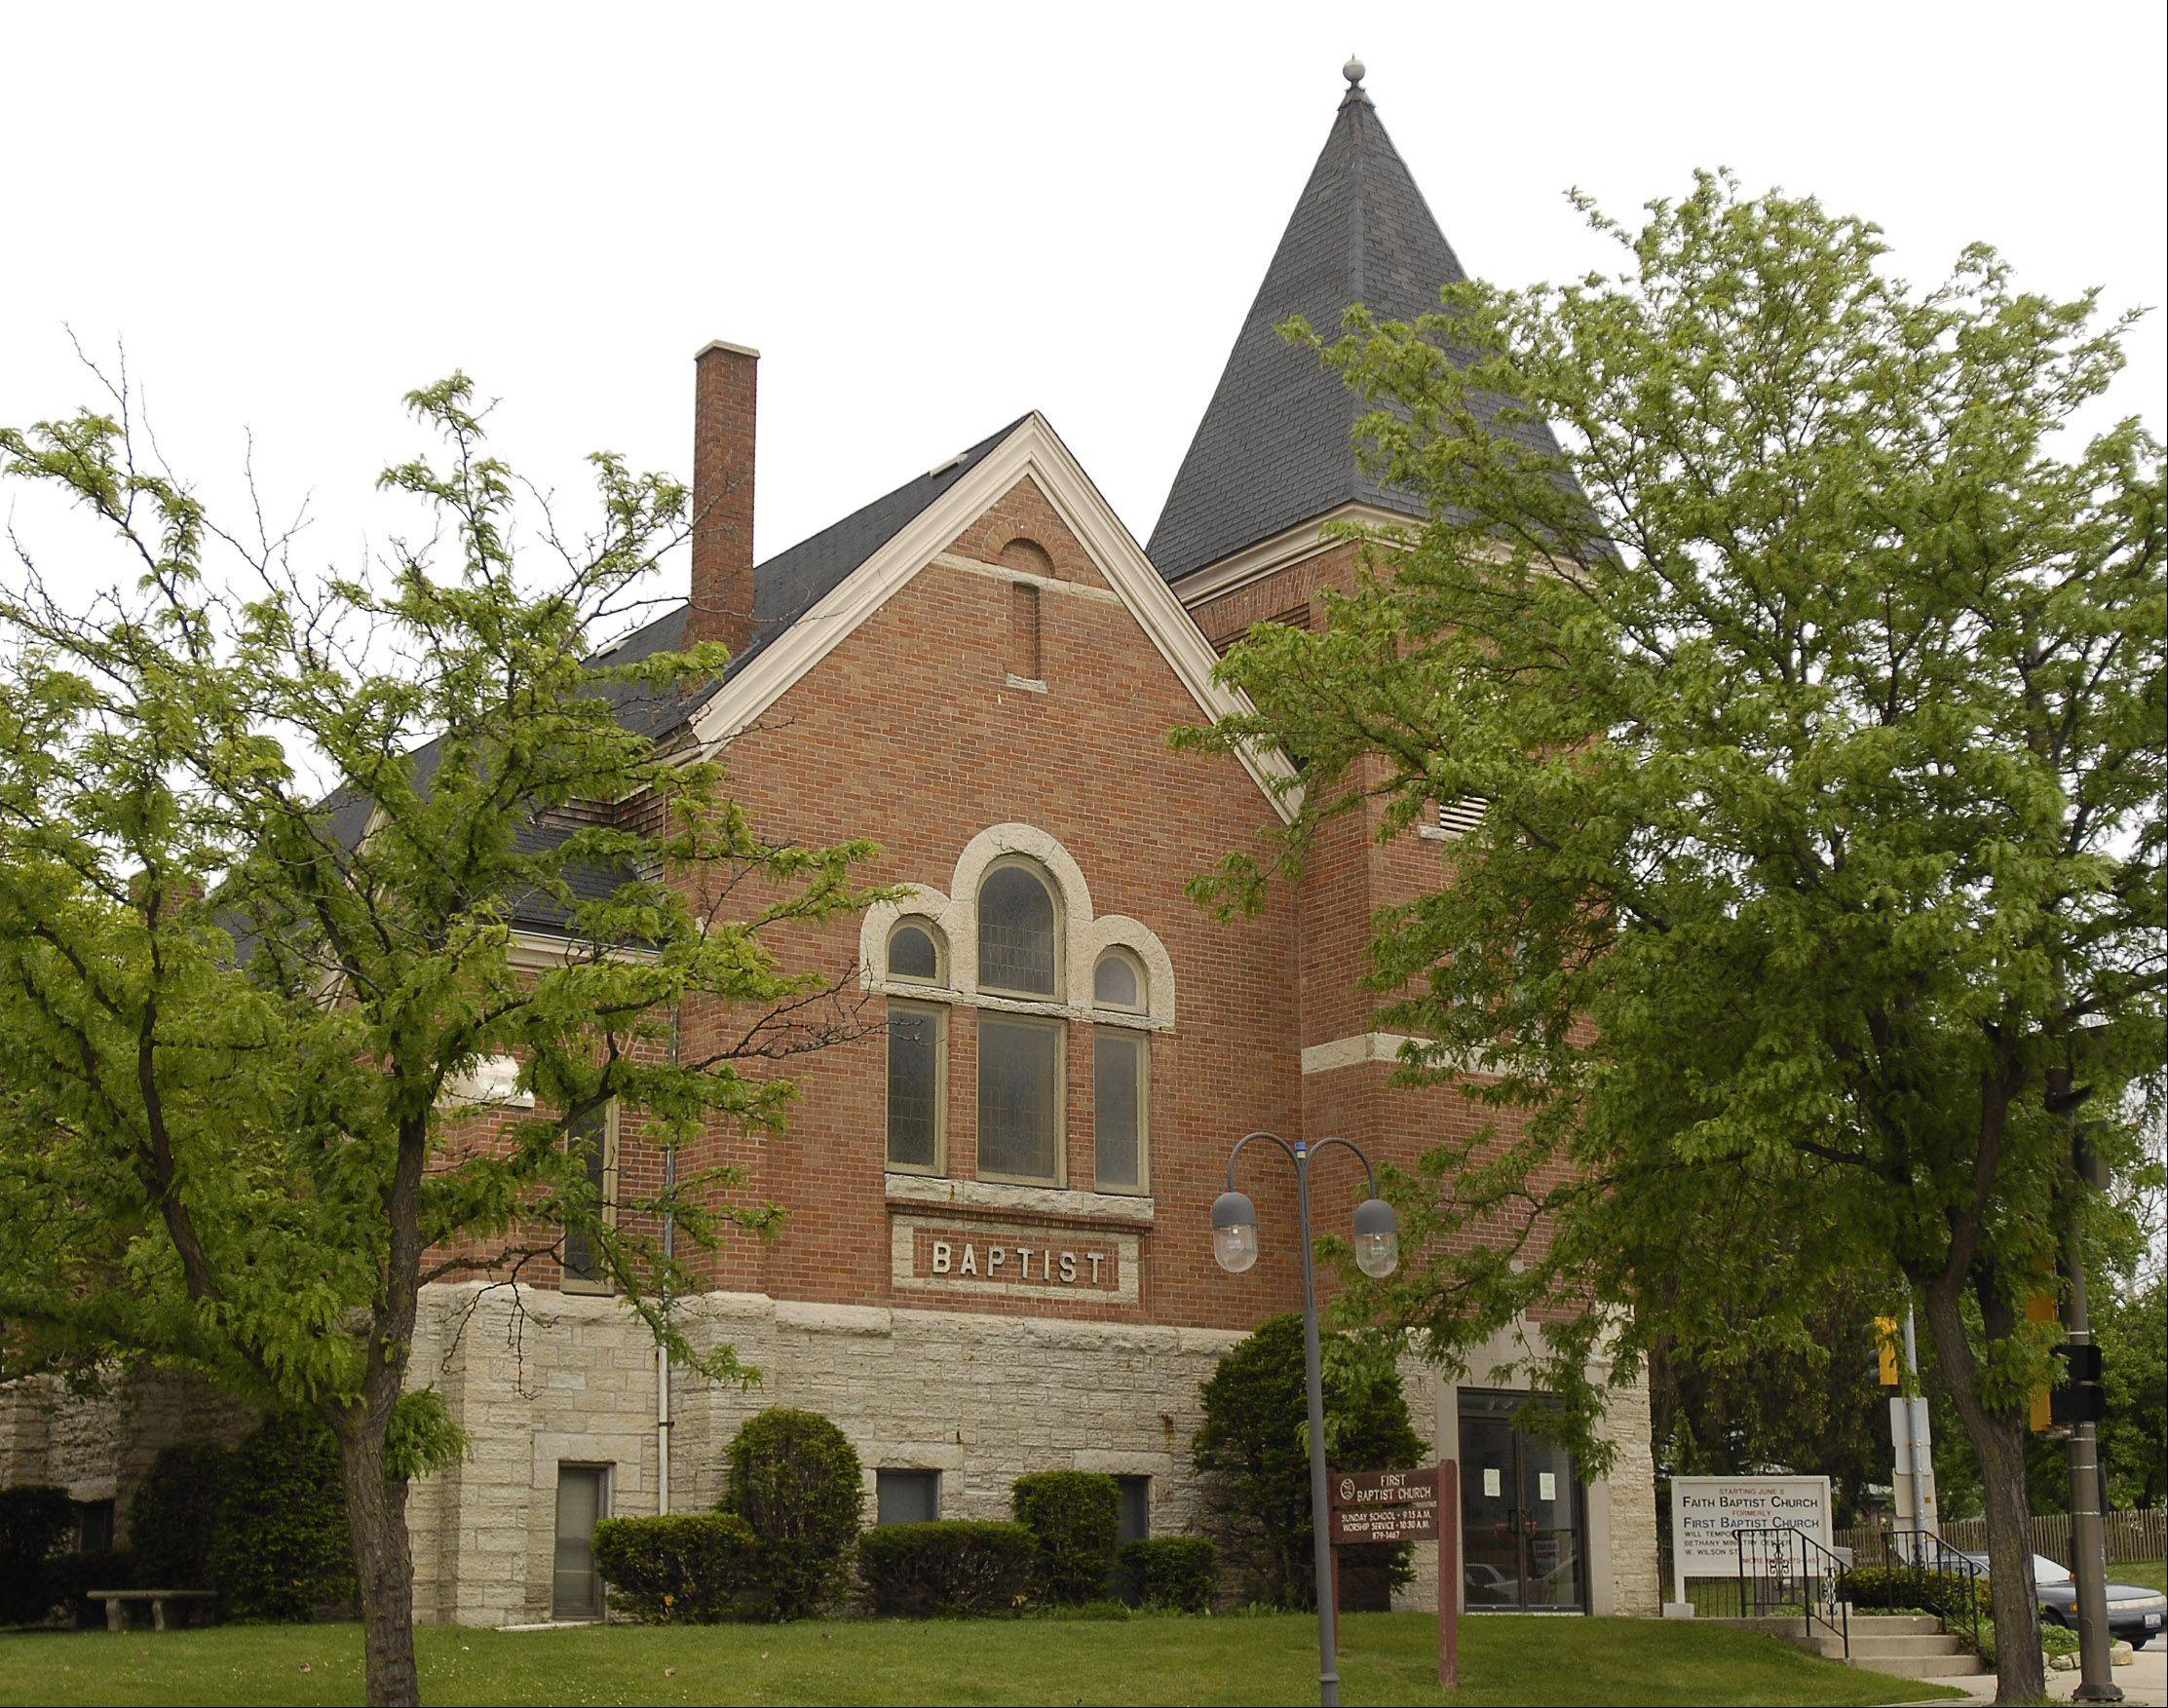 Public's thoughts sought on fixing old Baptist church